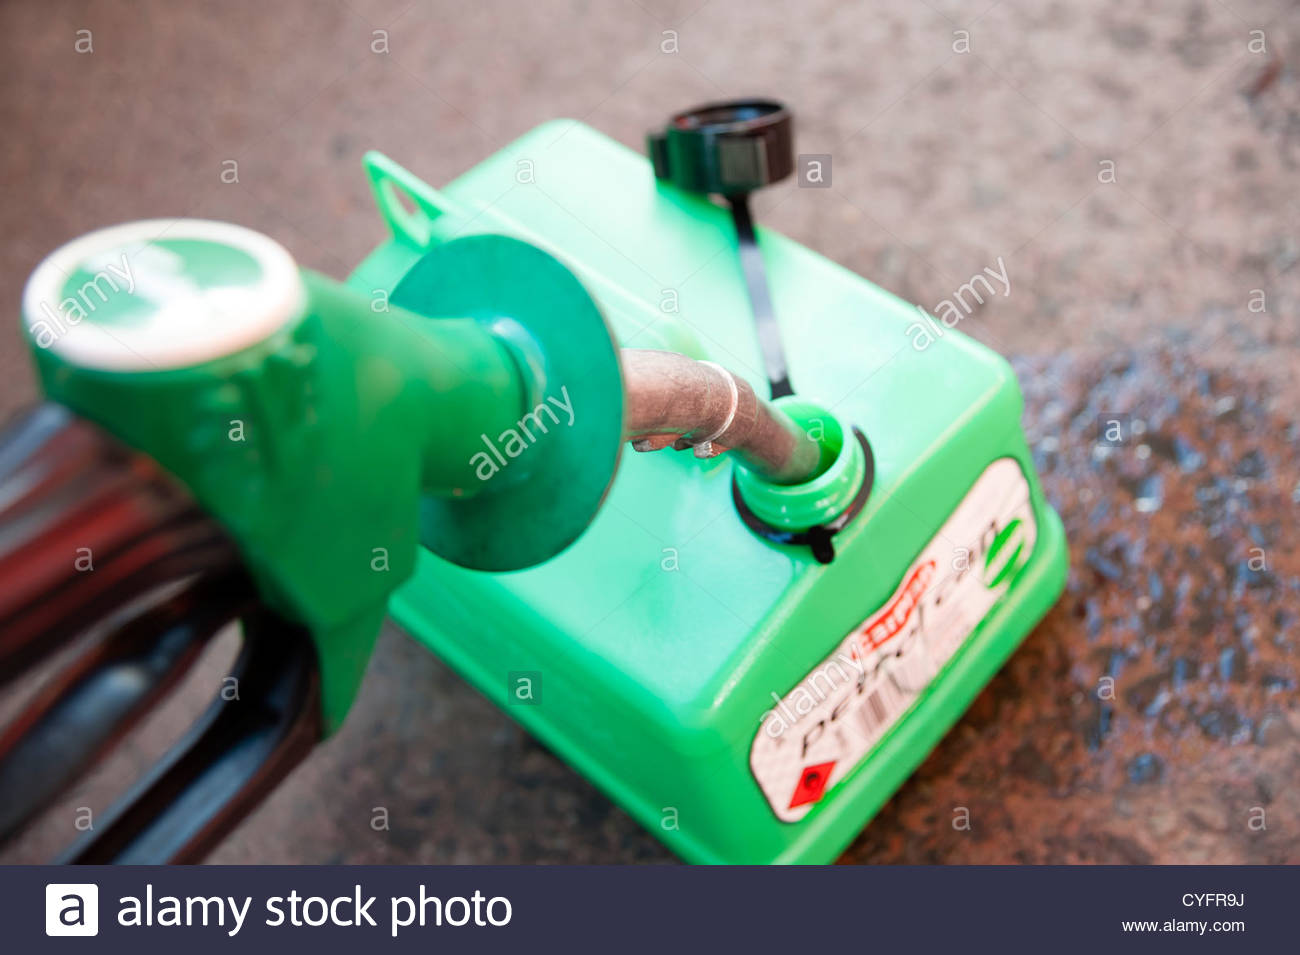 Filling up a petrol can with unleaded fuel, UK. Close up of a petrol pump nozzle in fuel can on the garage forecourt. - Stock Image